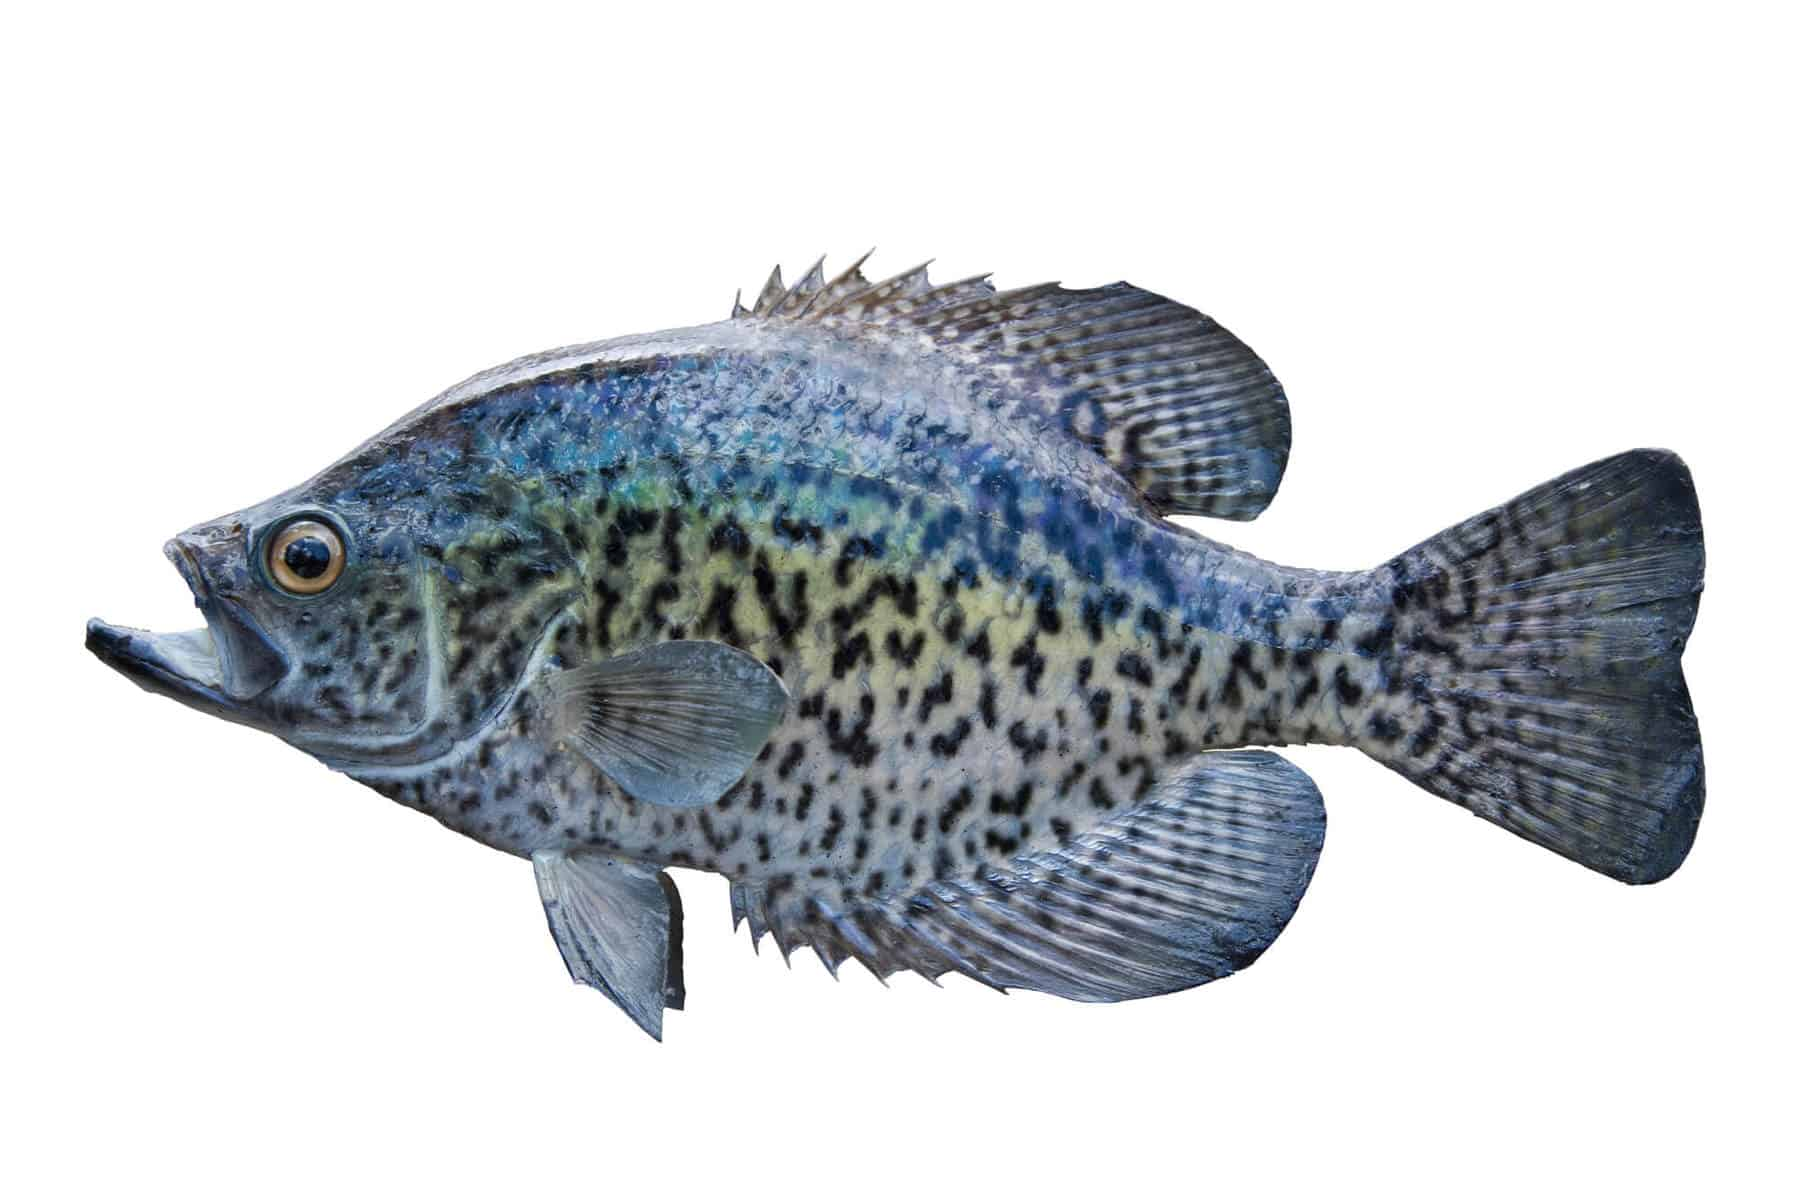 Raising Crappie in an Aquaponic System